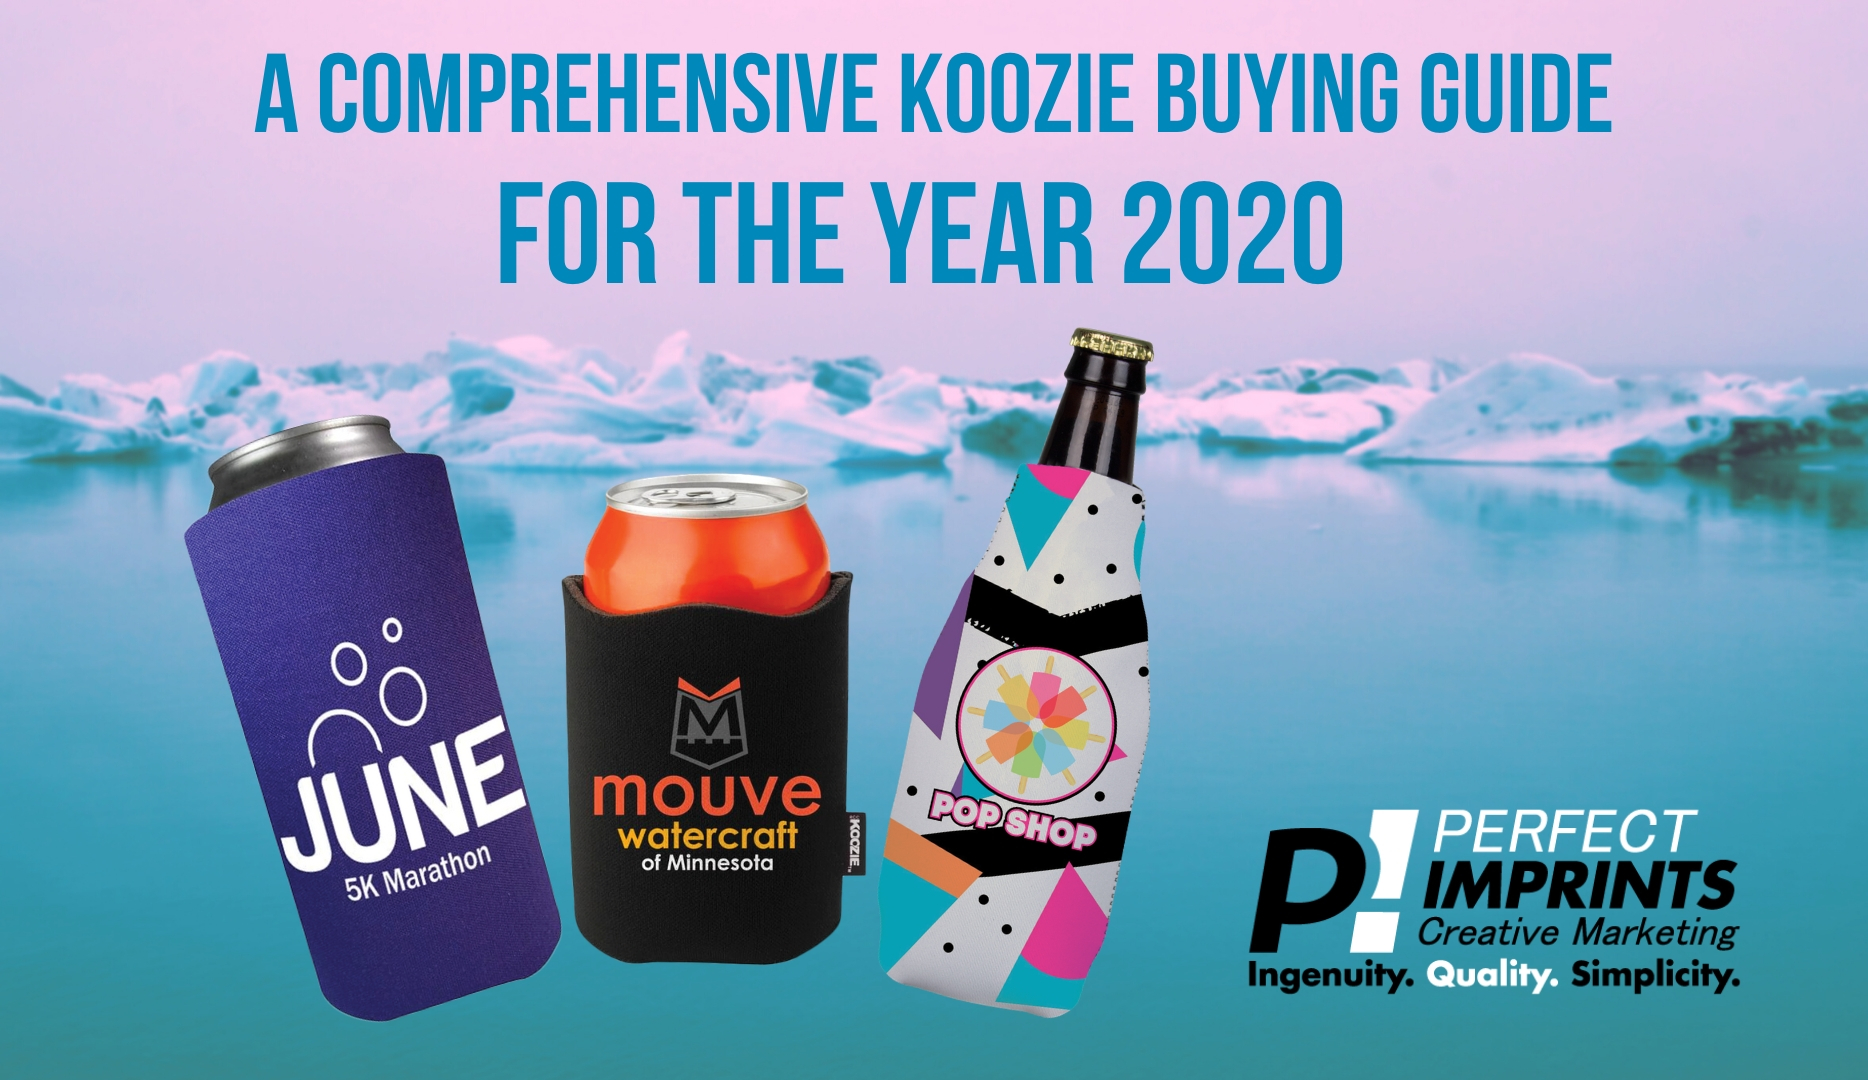 A Comprehensive Koozie Buying Guide for the Year 2020